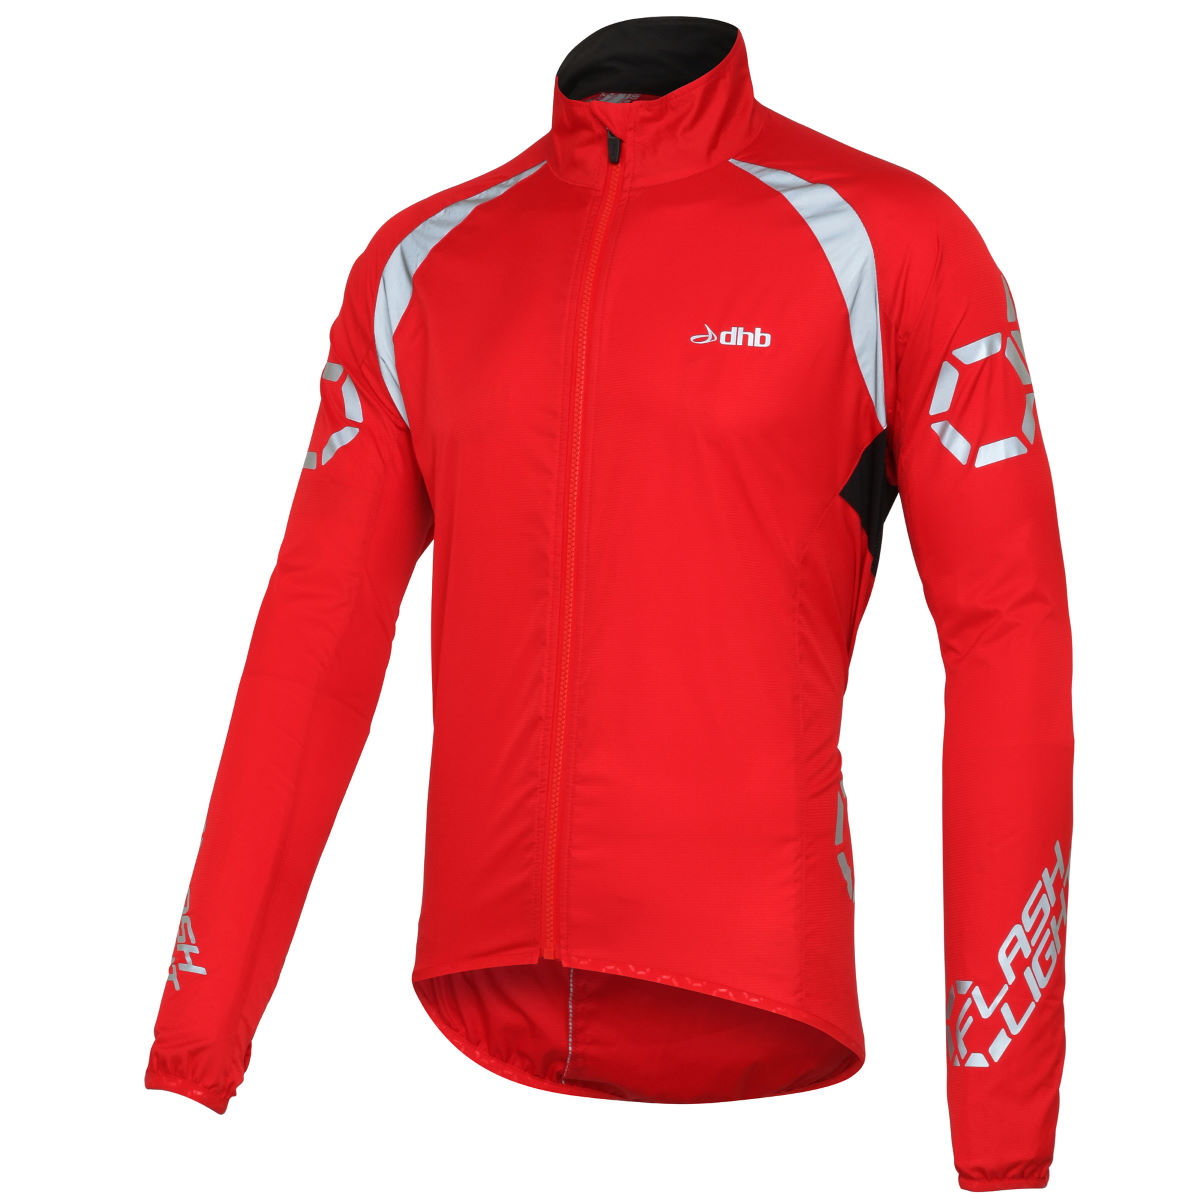 Veste dhb Flashlight (coupe-vent) - XL Rouge Coupe-vents vélo